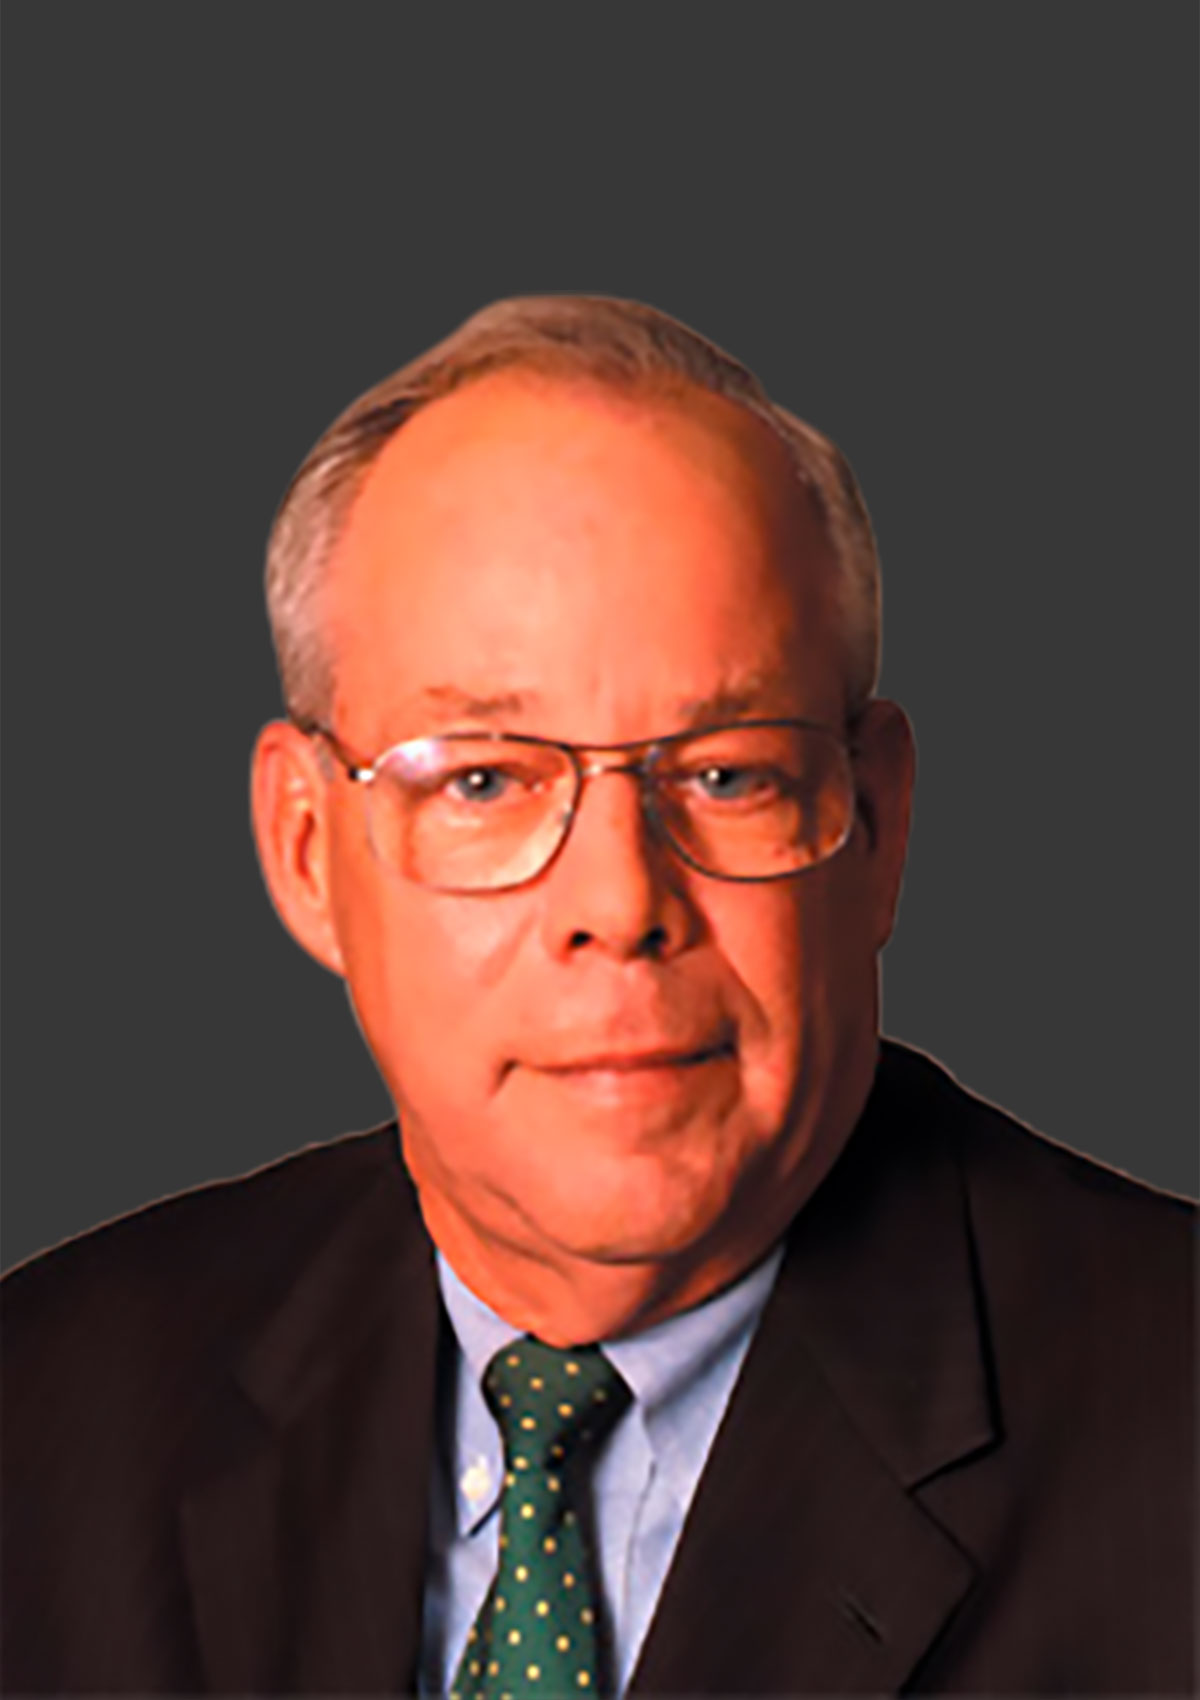 Click here to learn more about Sullivan, James J.